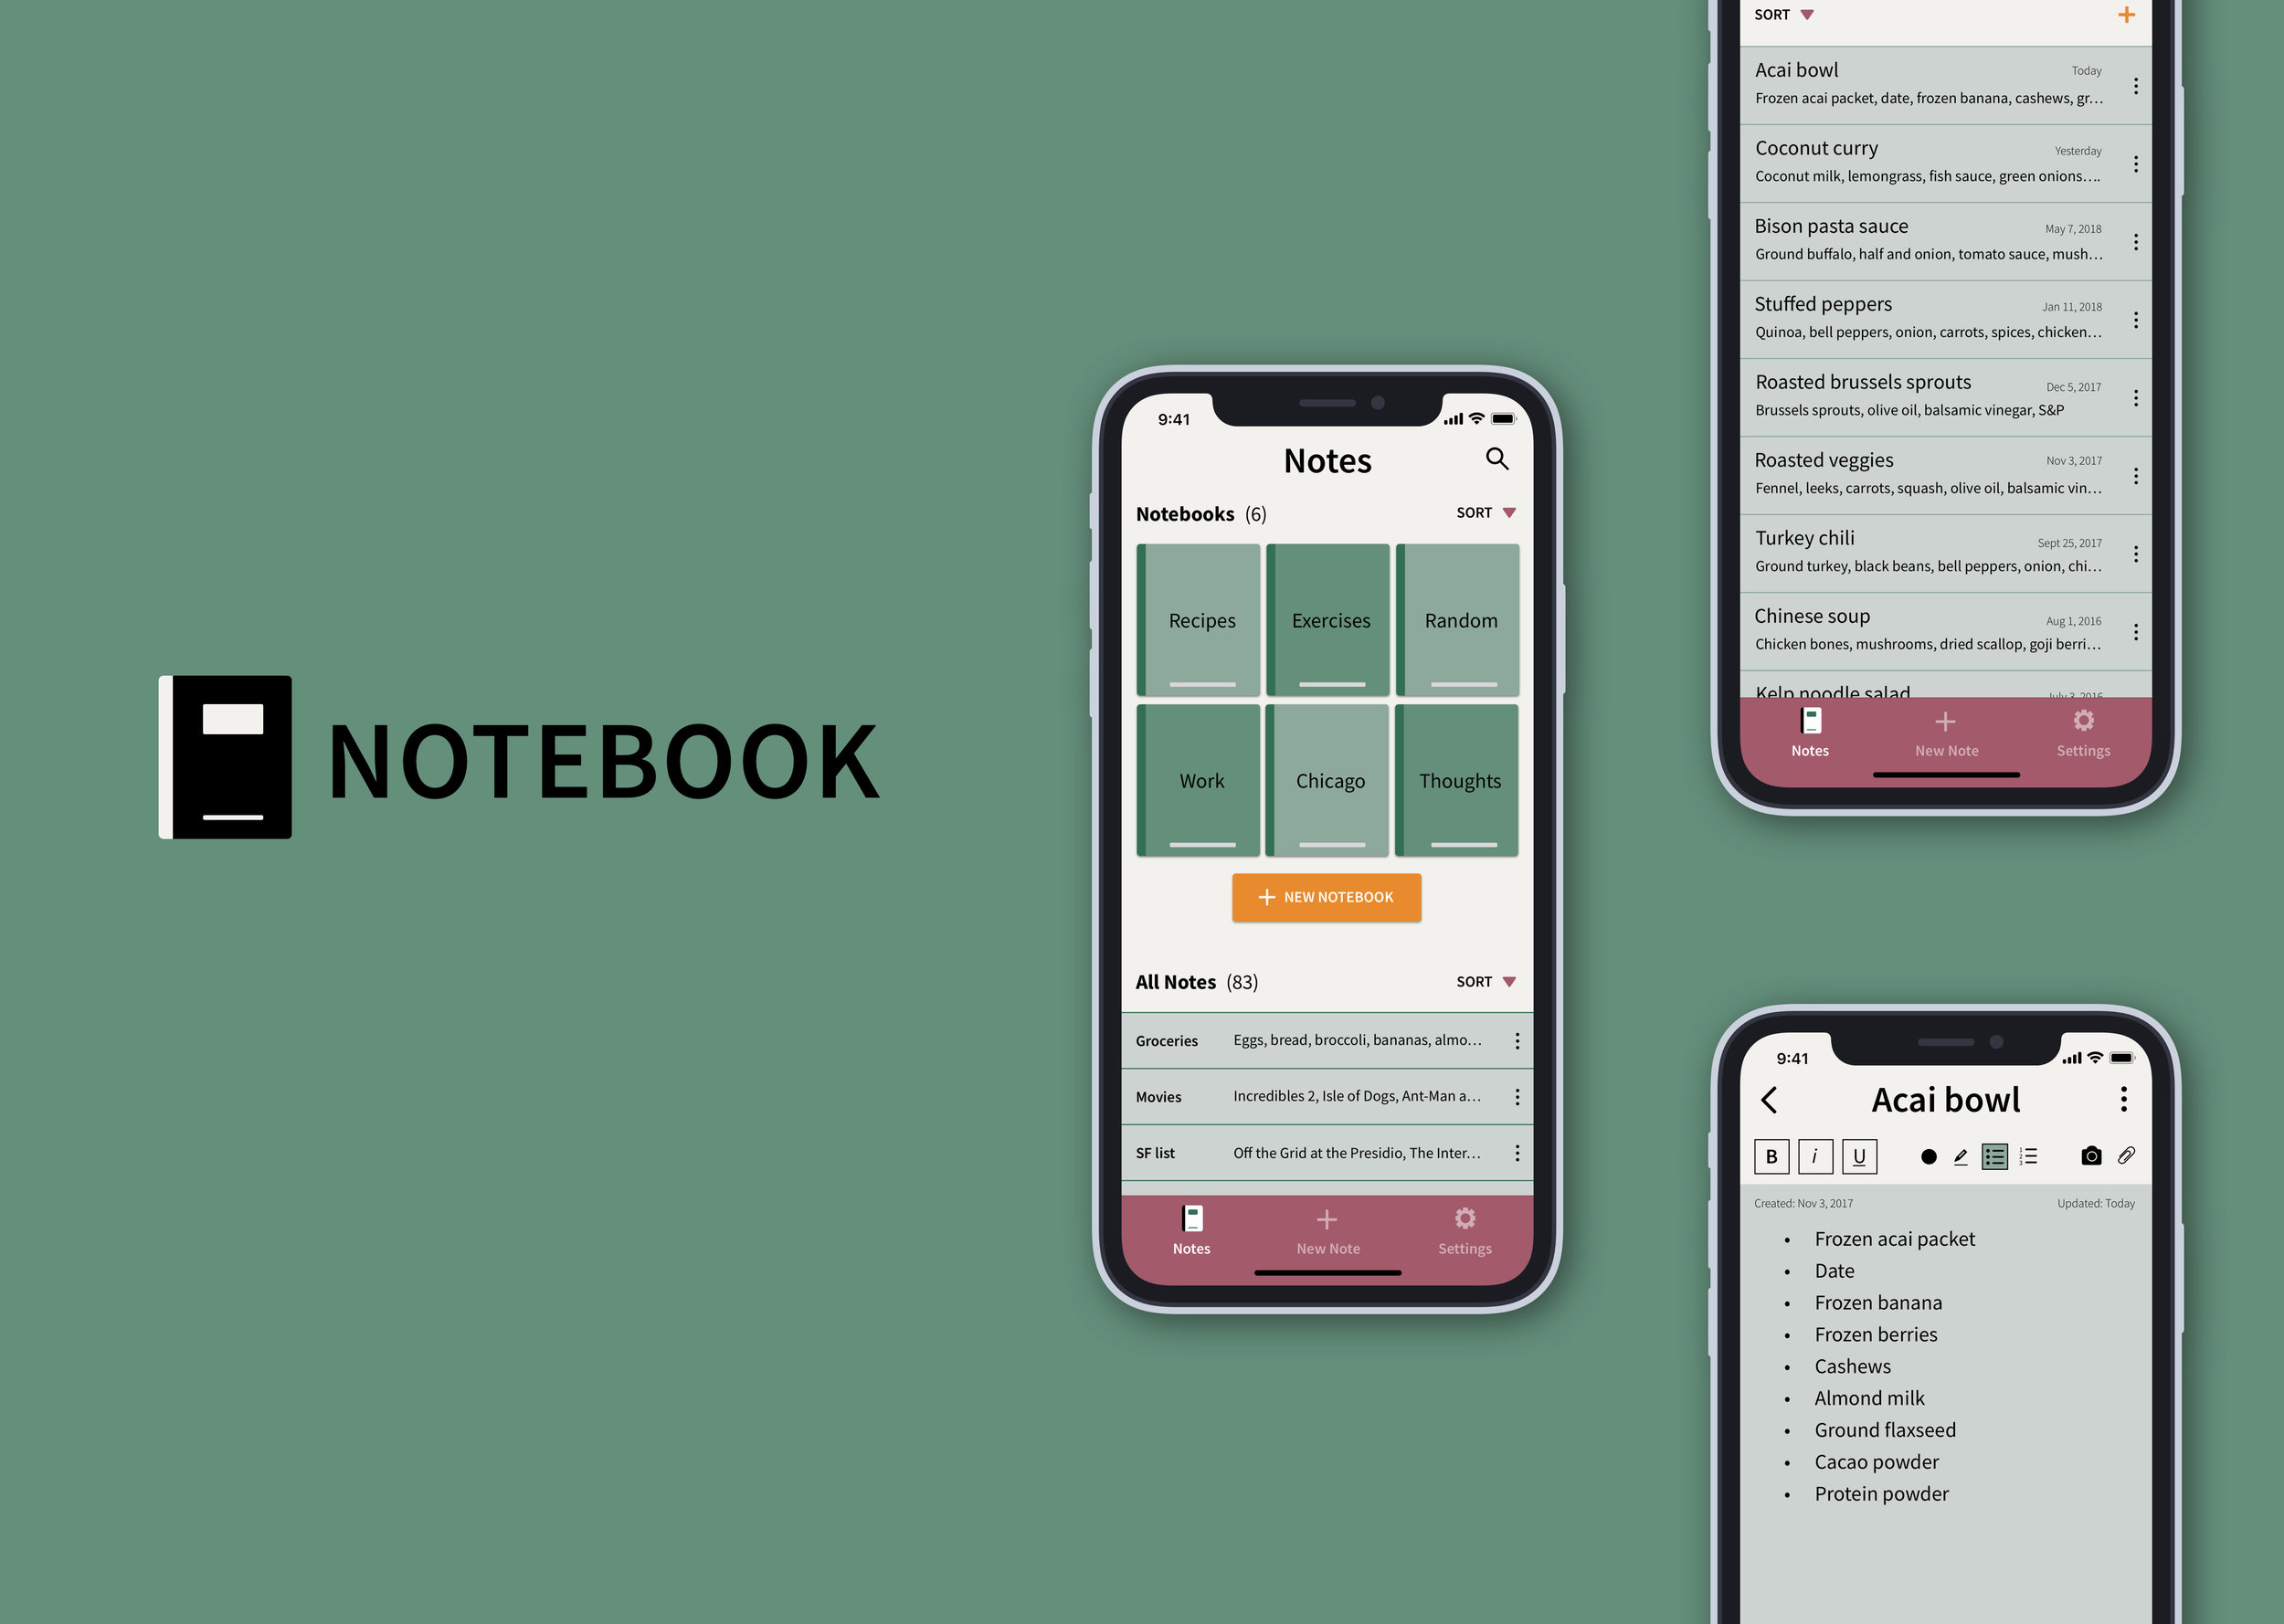 Previous Project: Notebook - iOS App Look & Feel Sample